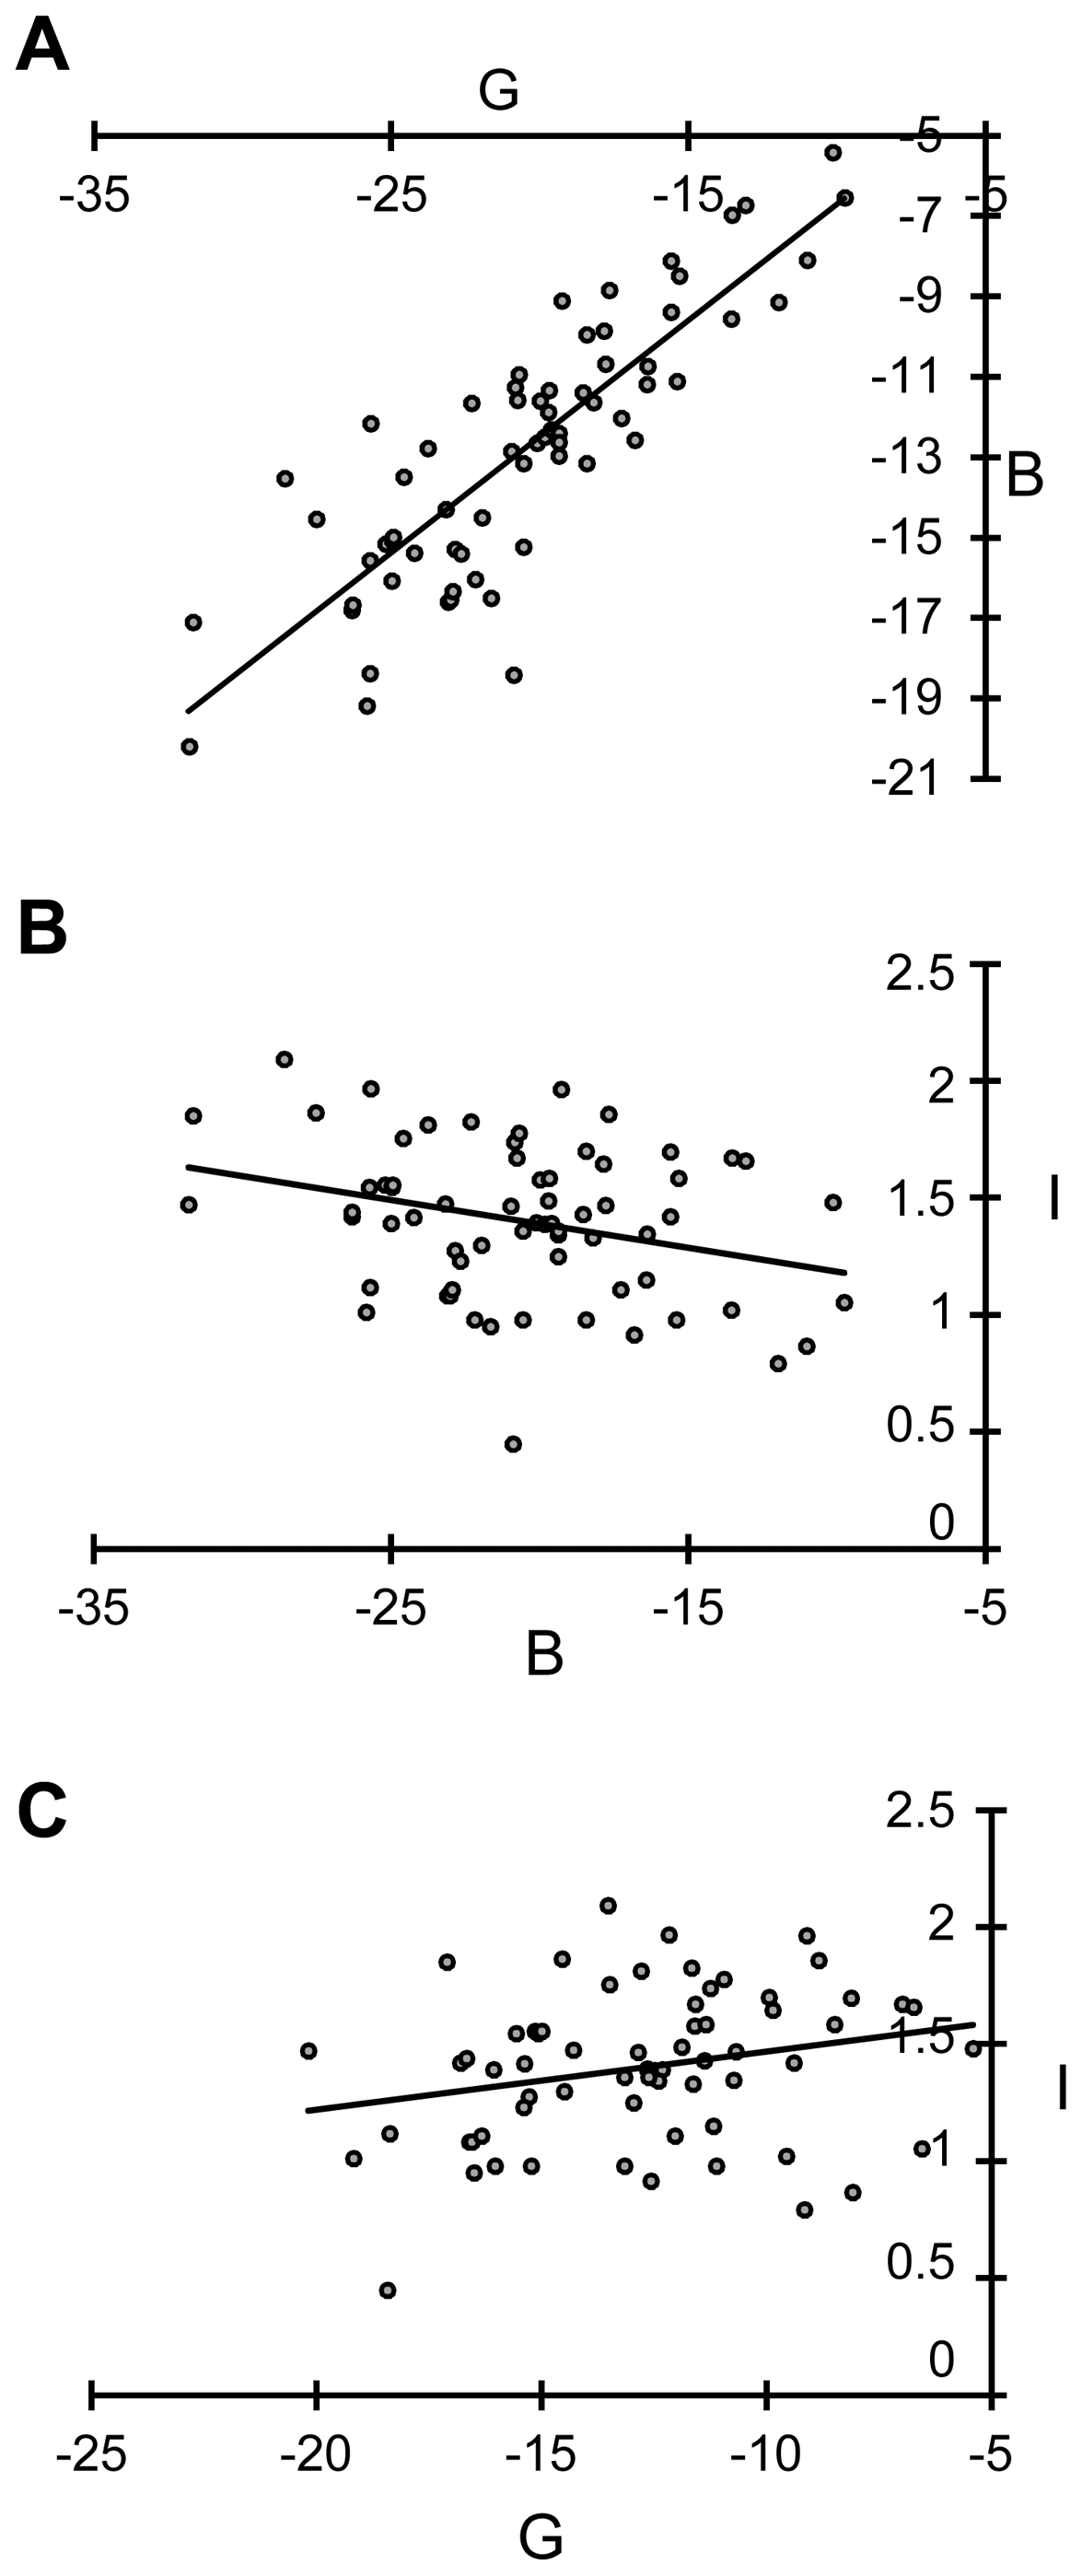 Graphic representations of correlation between the variables B, G, and I after Box-Cox transformation.